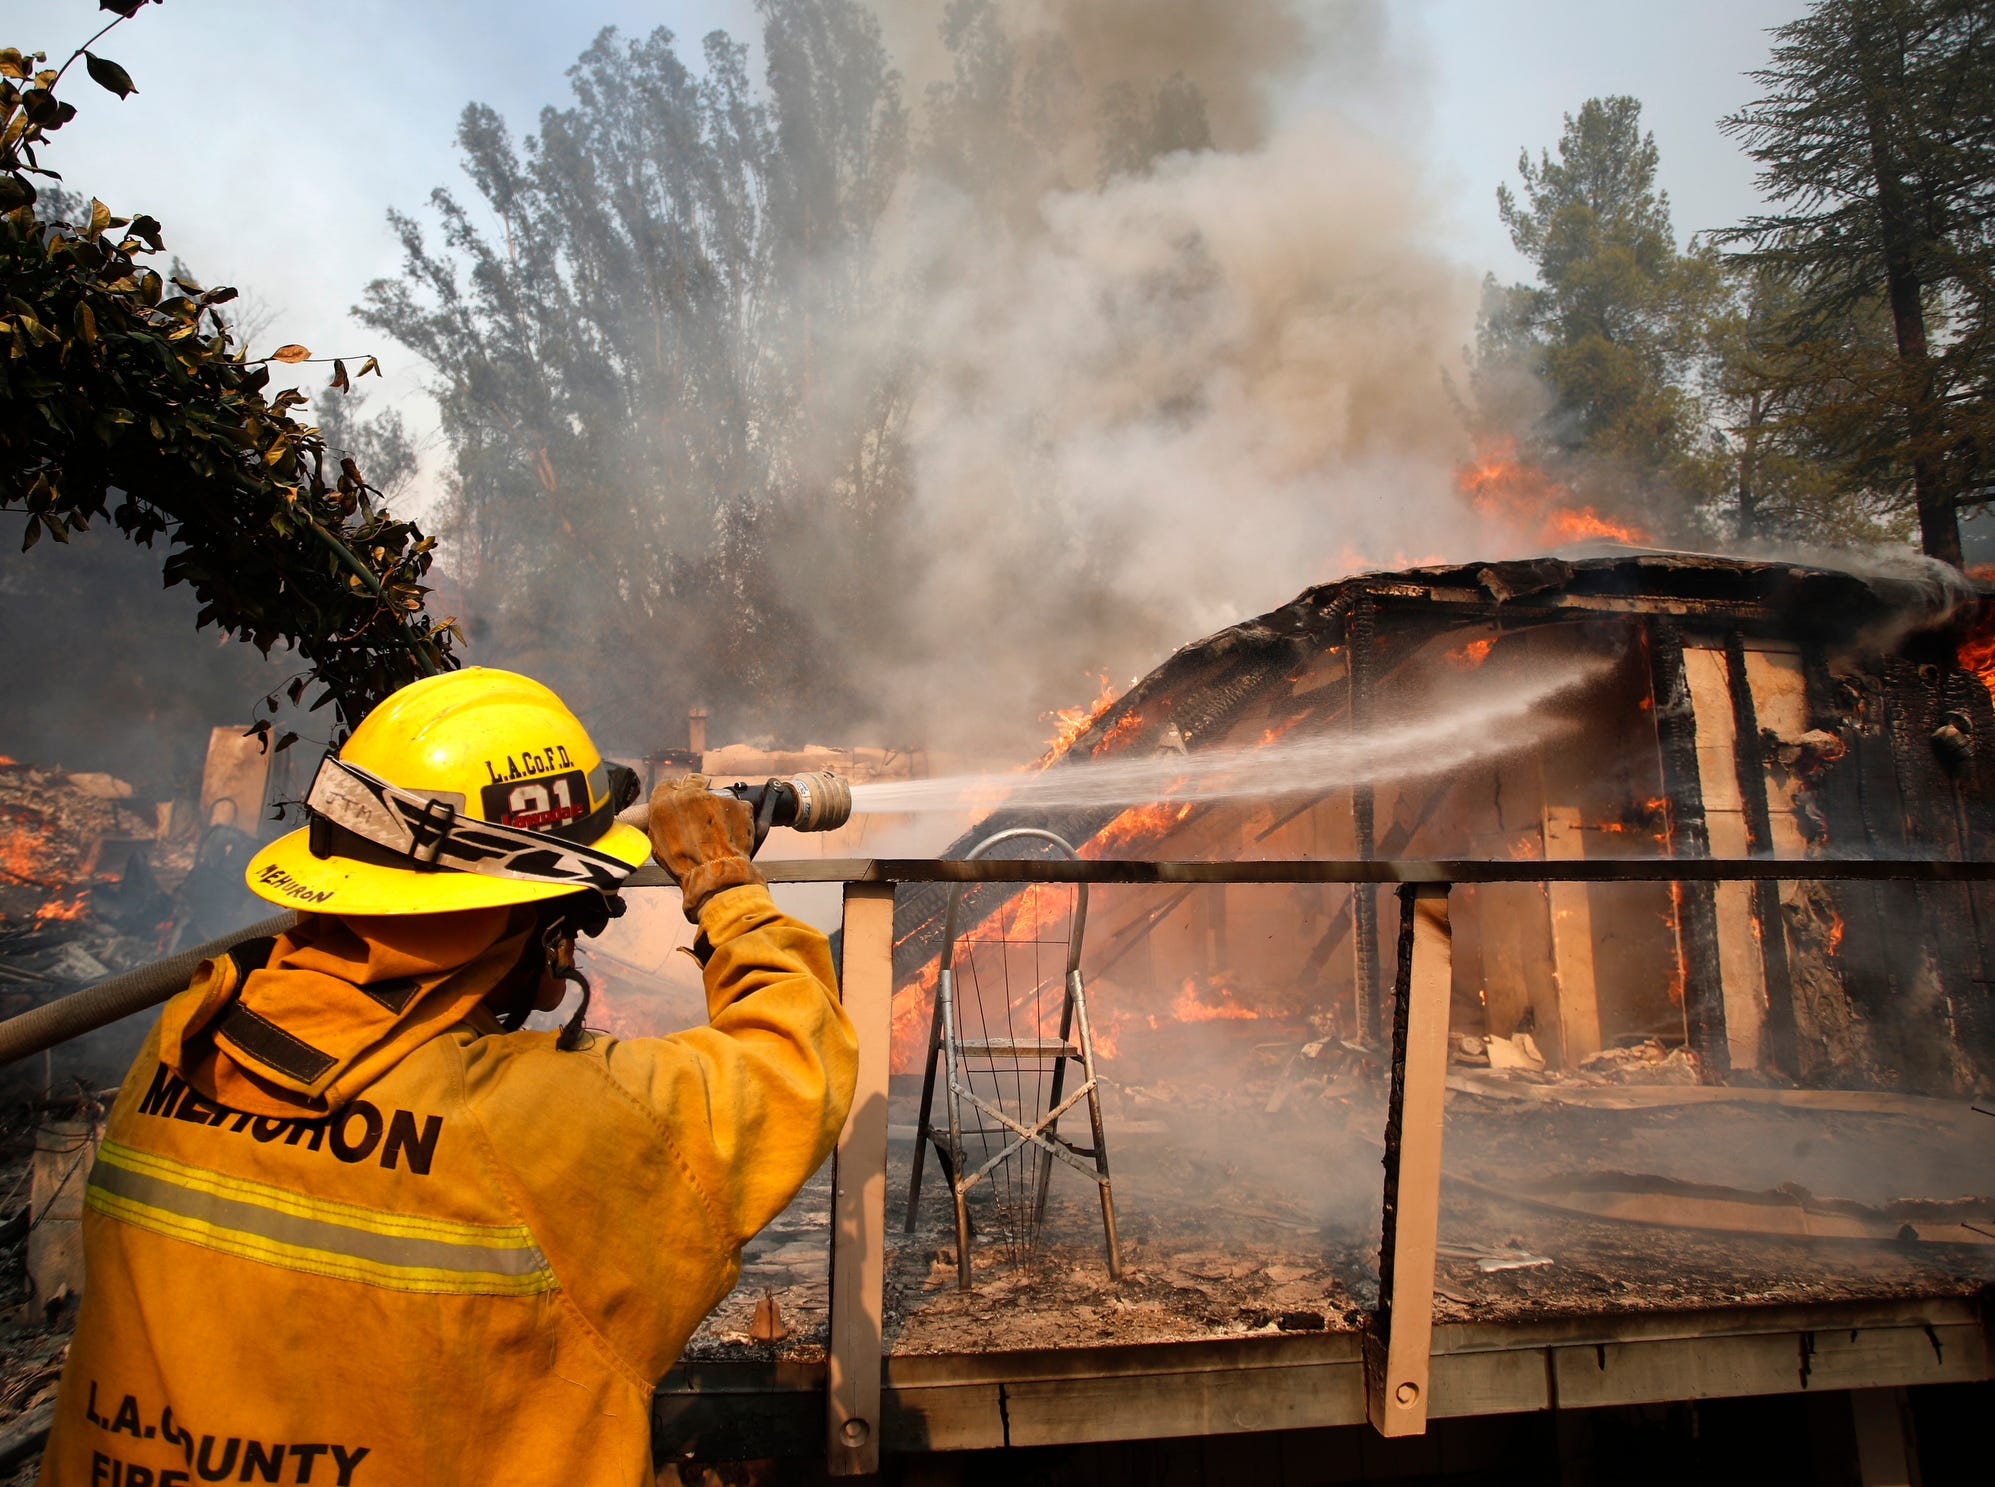 Firefighters battle a home on fire at the Malibu Lake community in Malibu, Calif., Friday.